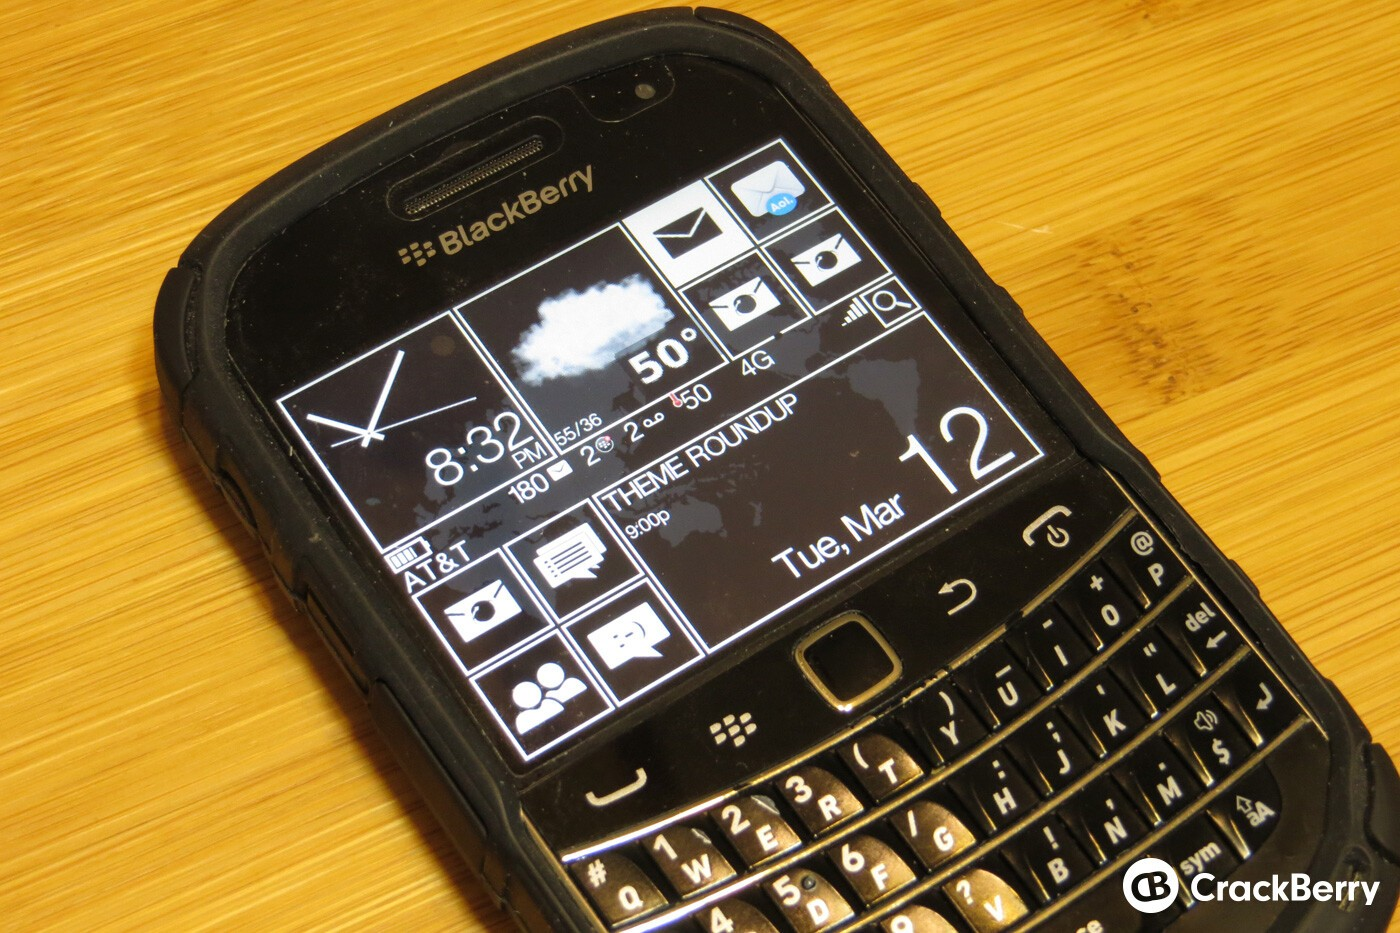 Update Autotext Bbm Blackberry Messenger 2013 Gratis Download BlackBerry theme roundup March 14 2013 CrackBerry com 480x320